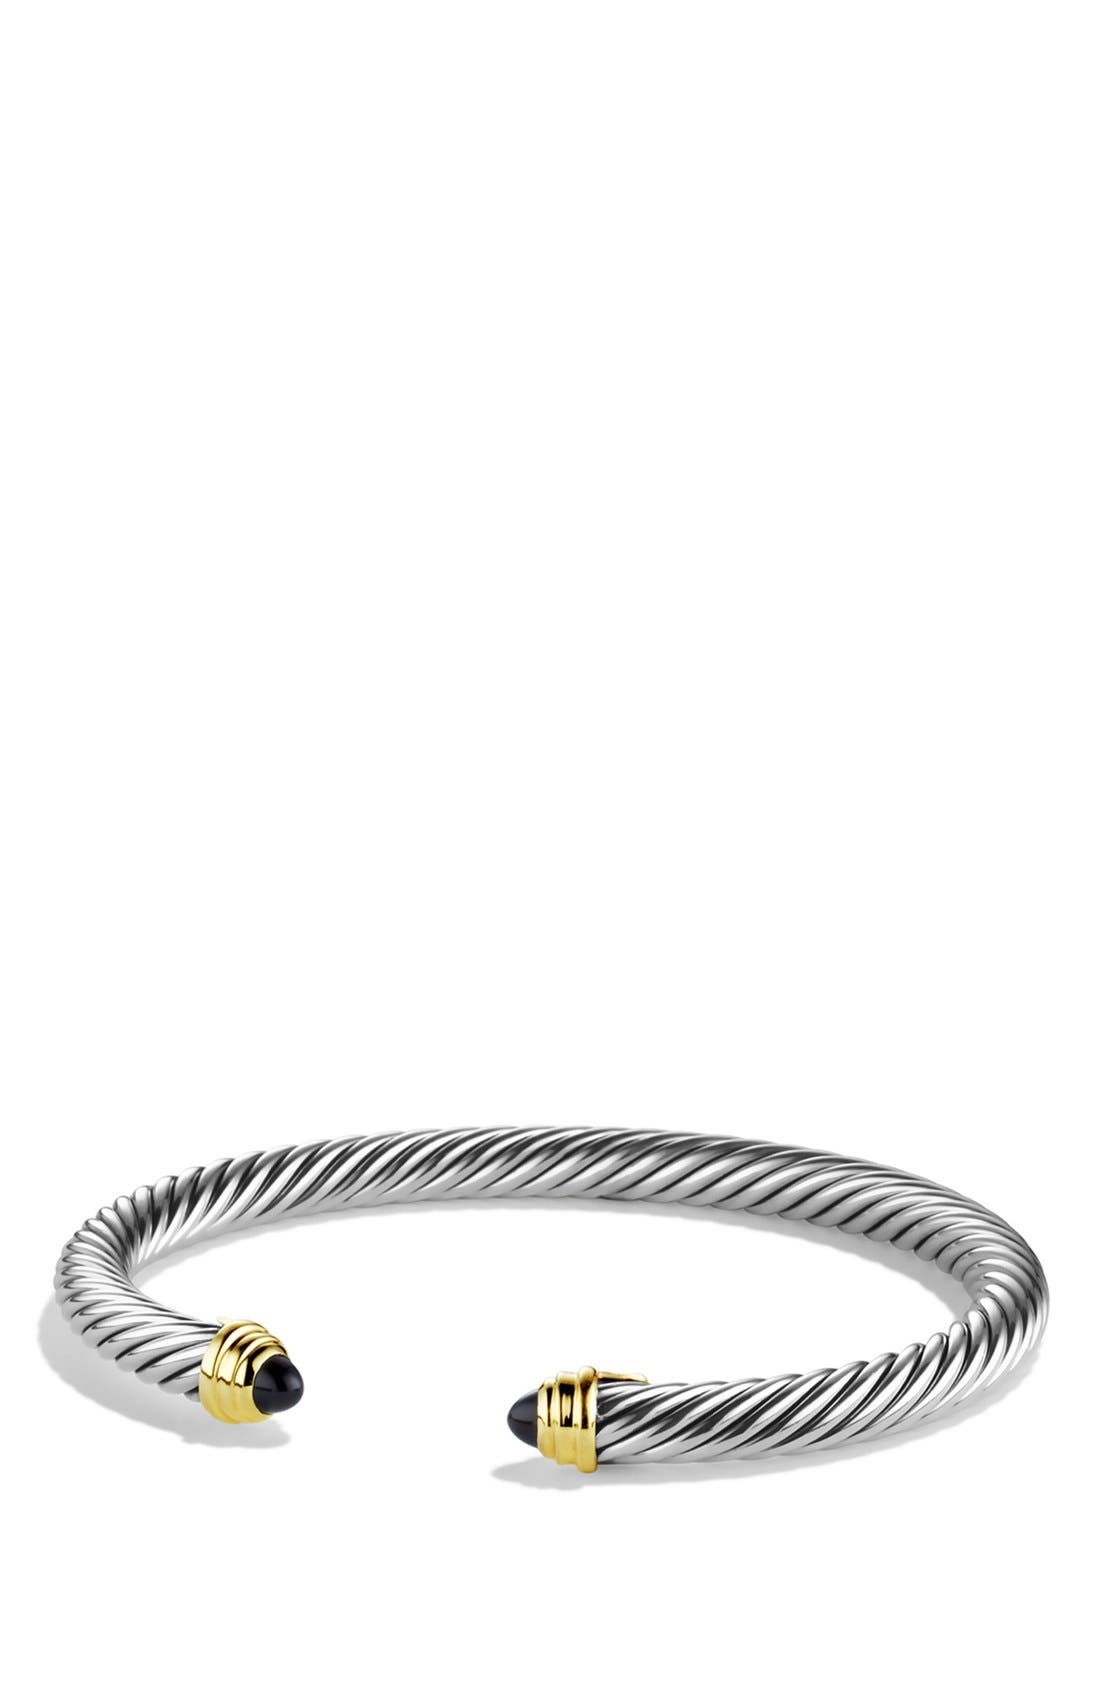 Main Image - David Yurman 'Cable Classics' Bracelet with Semiprecious Stones & Gold